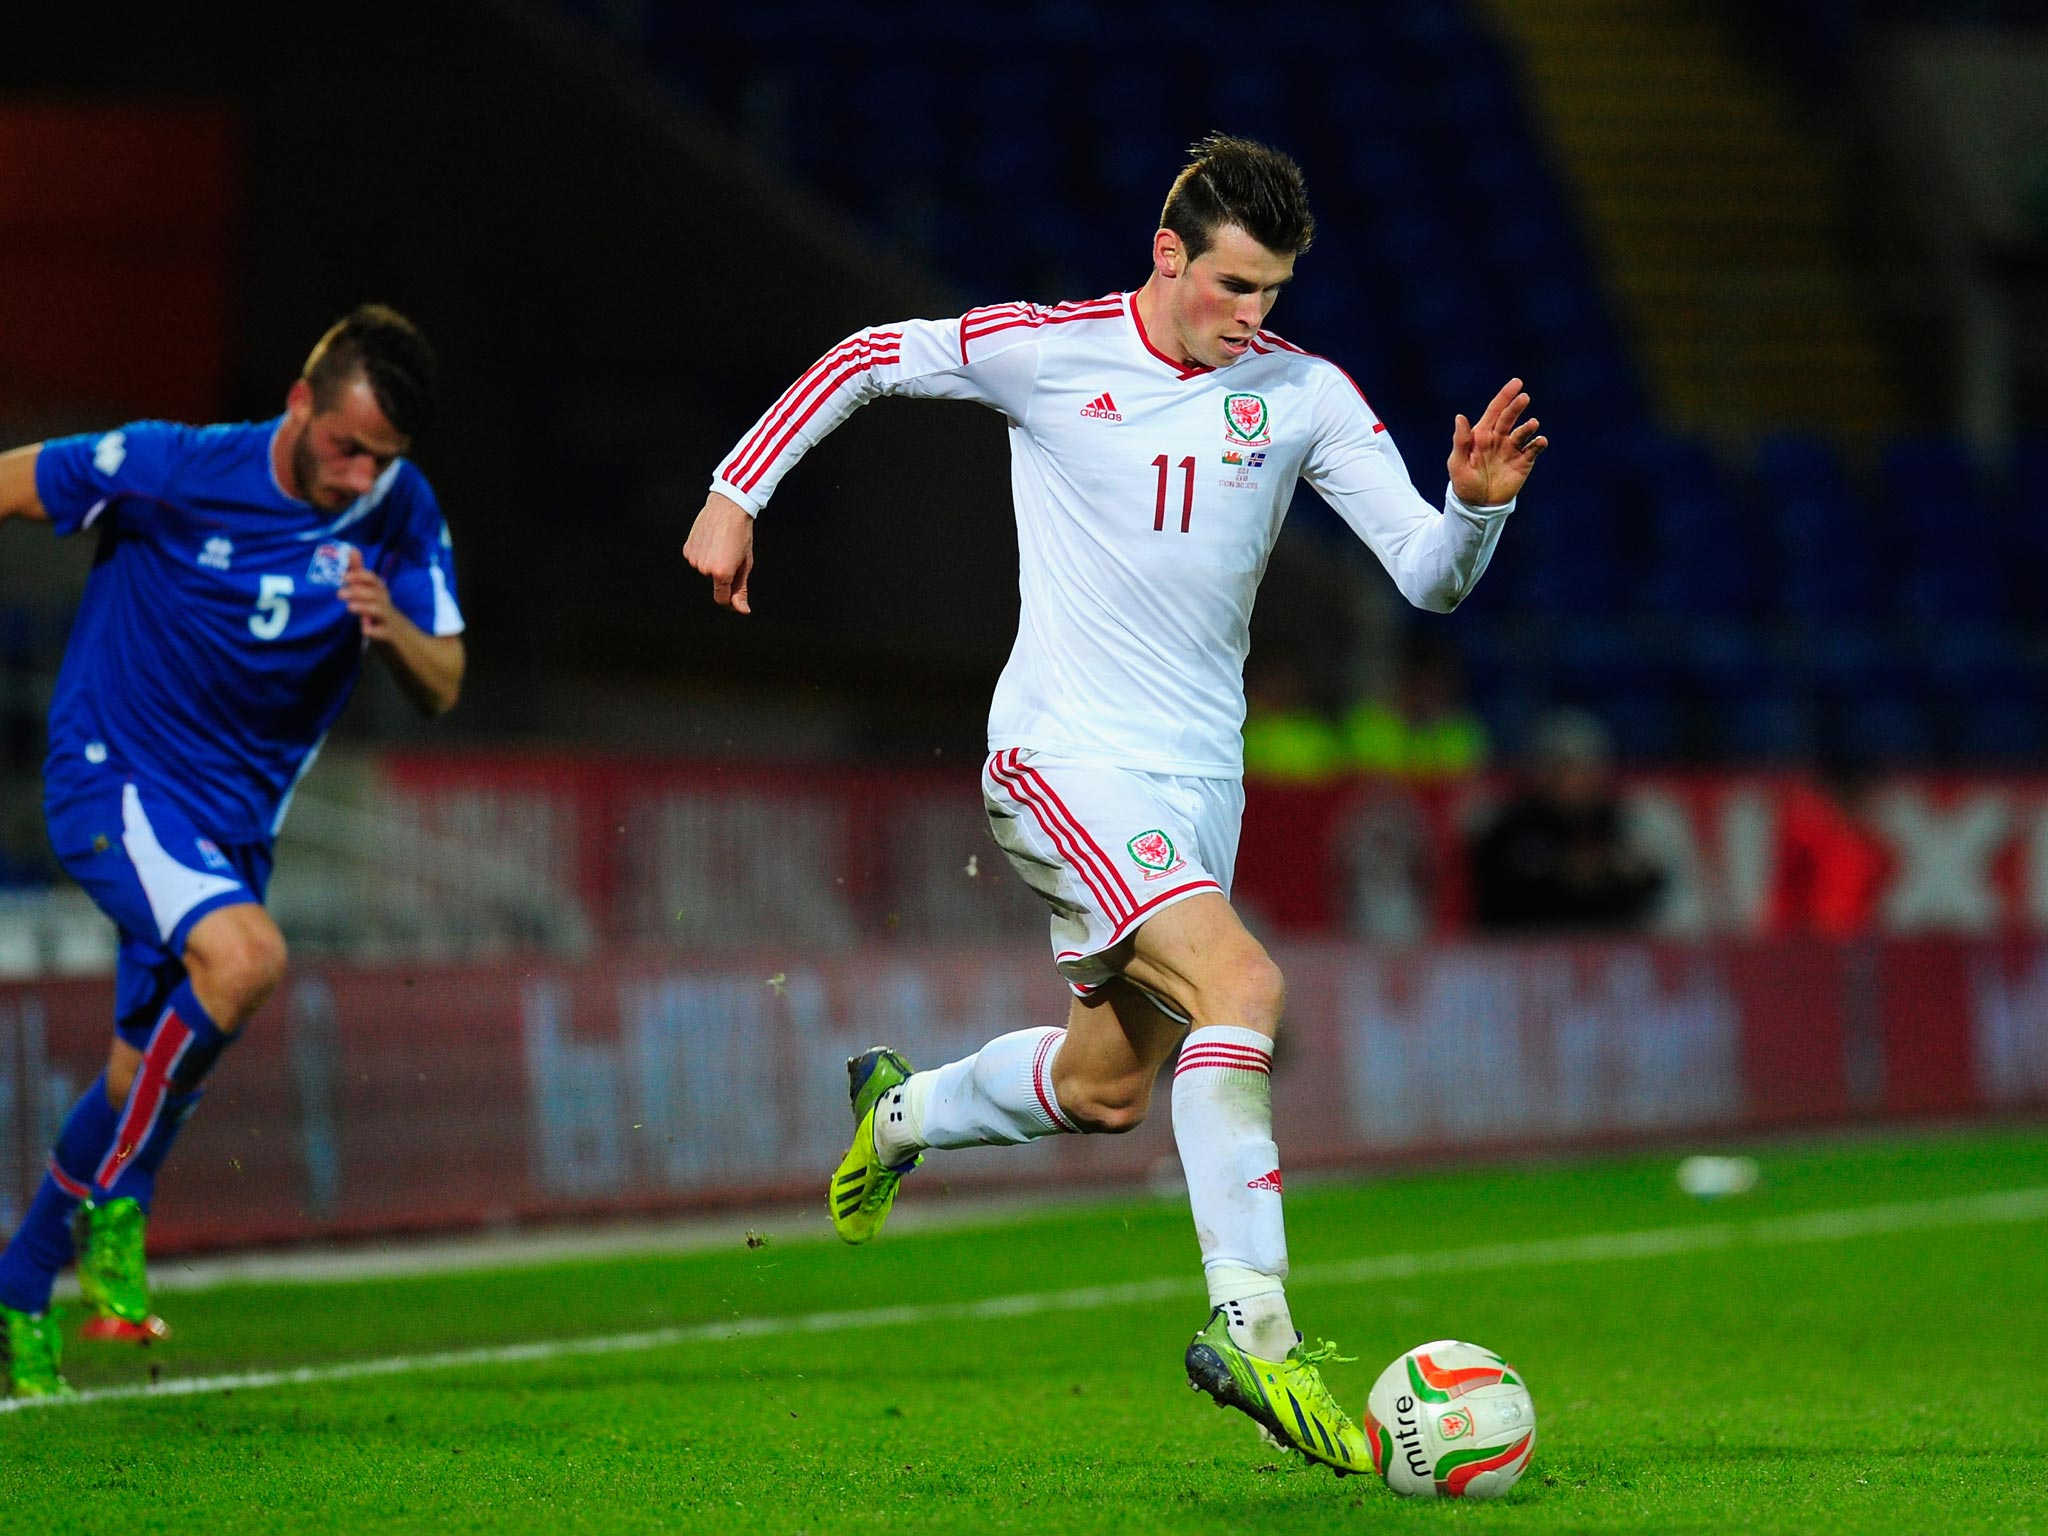 gareth bale taking ball to goal free mobile hd photos